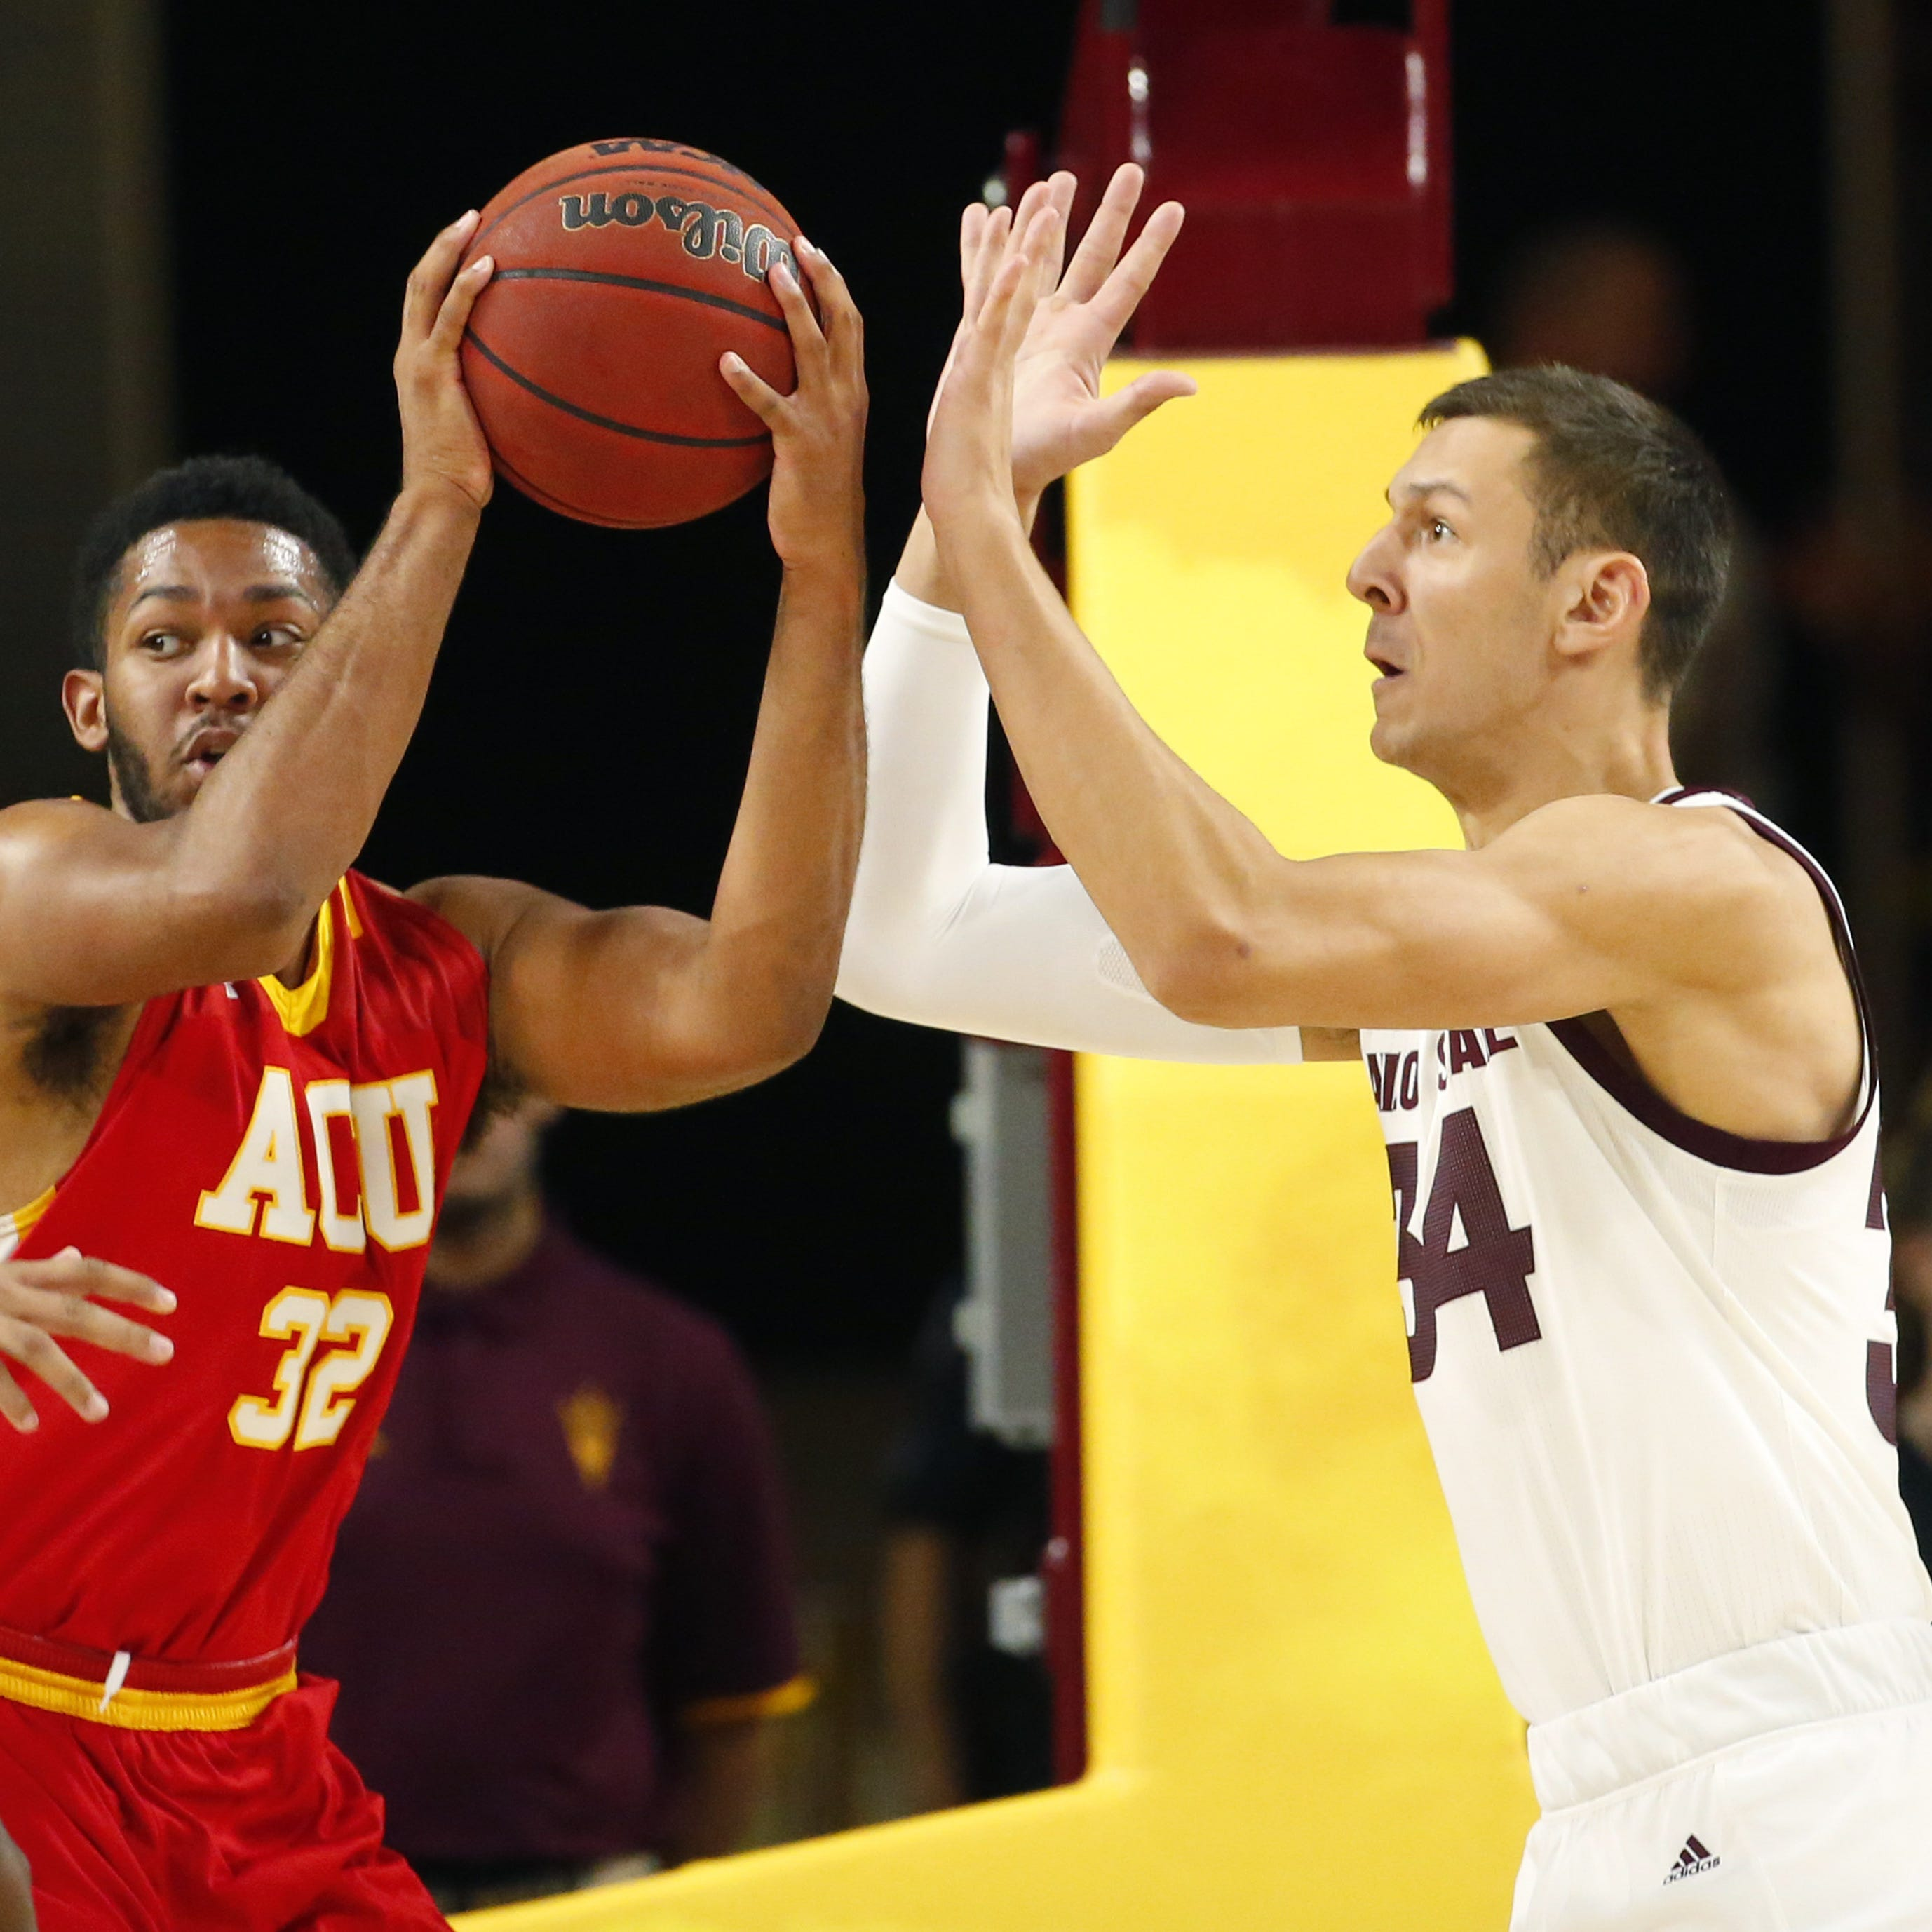 ASU basketball player Uros Plavsic adds his name to transfer portal